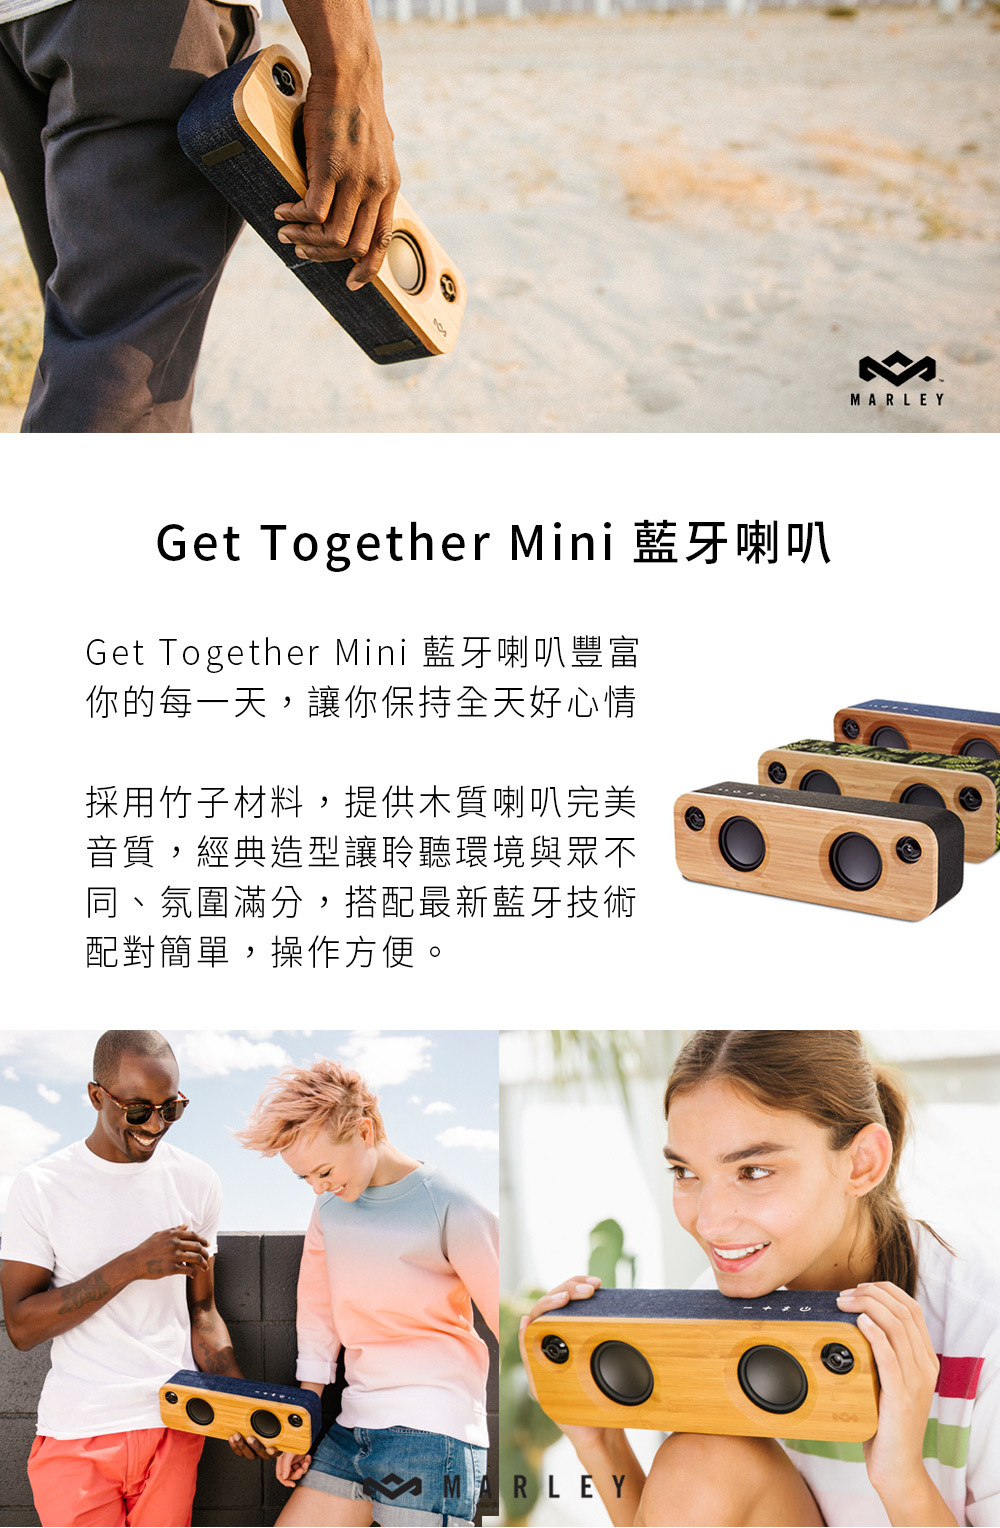 Marley Get Together Mini 藍牙喇叭